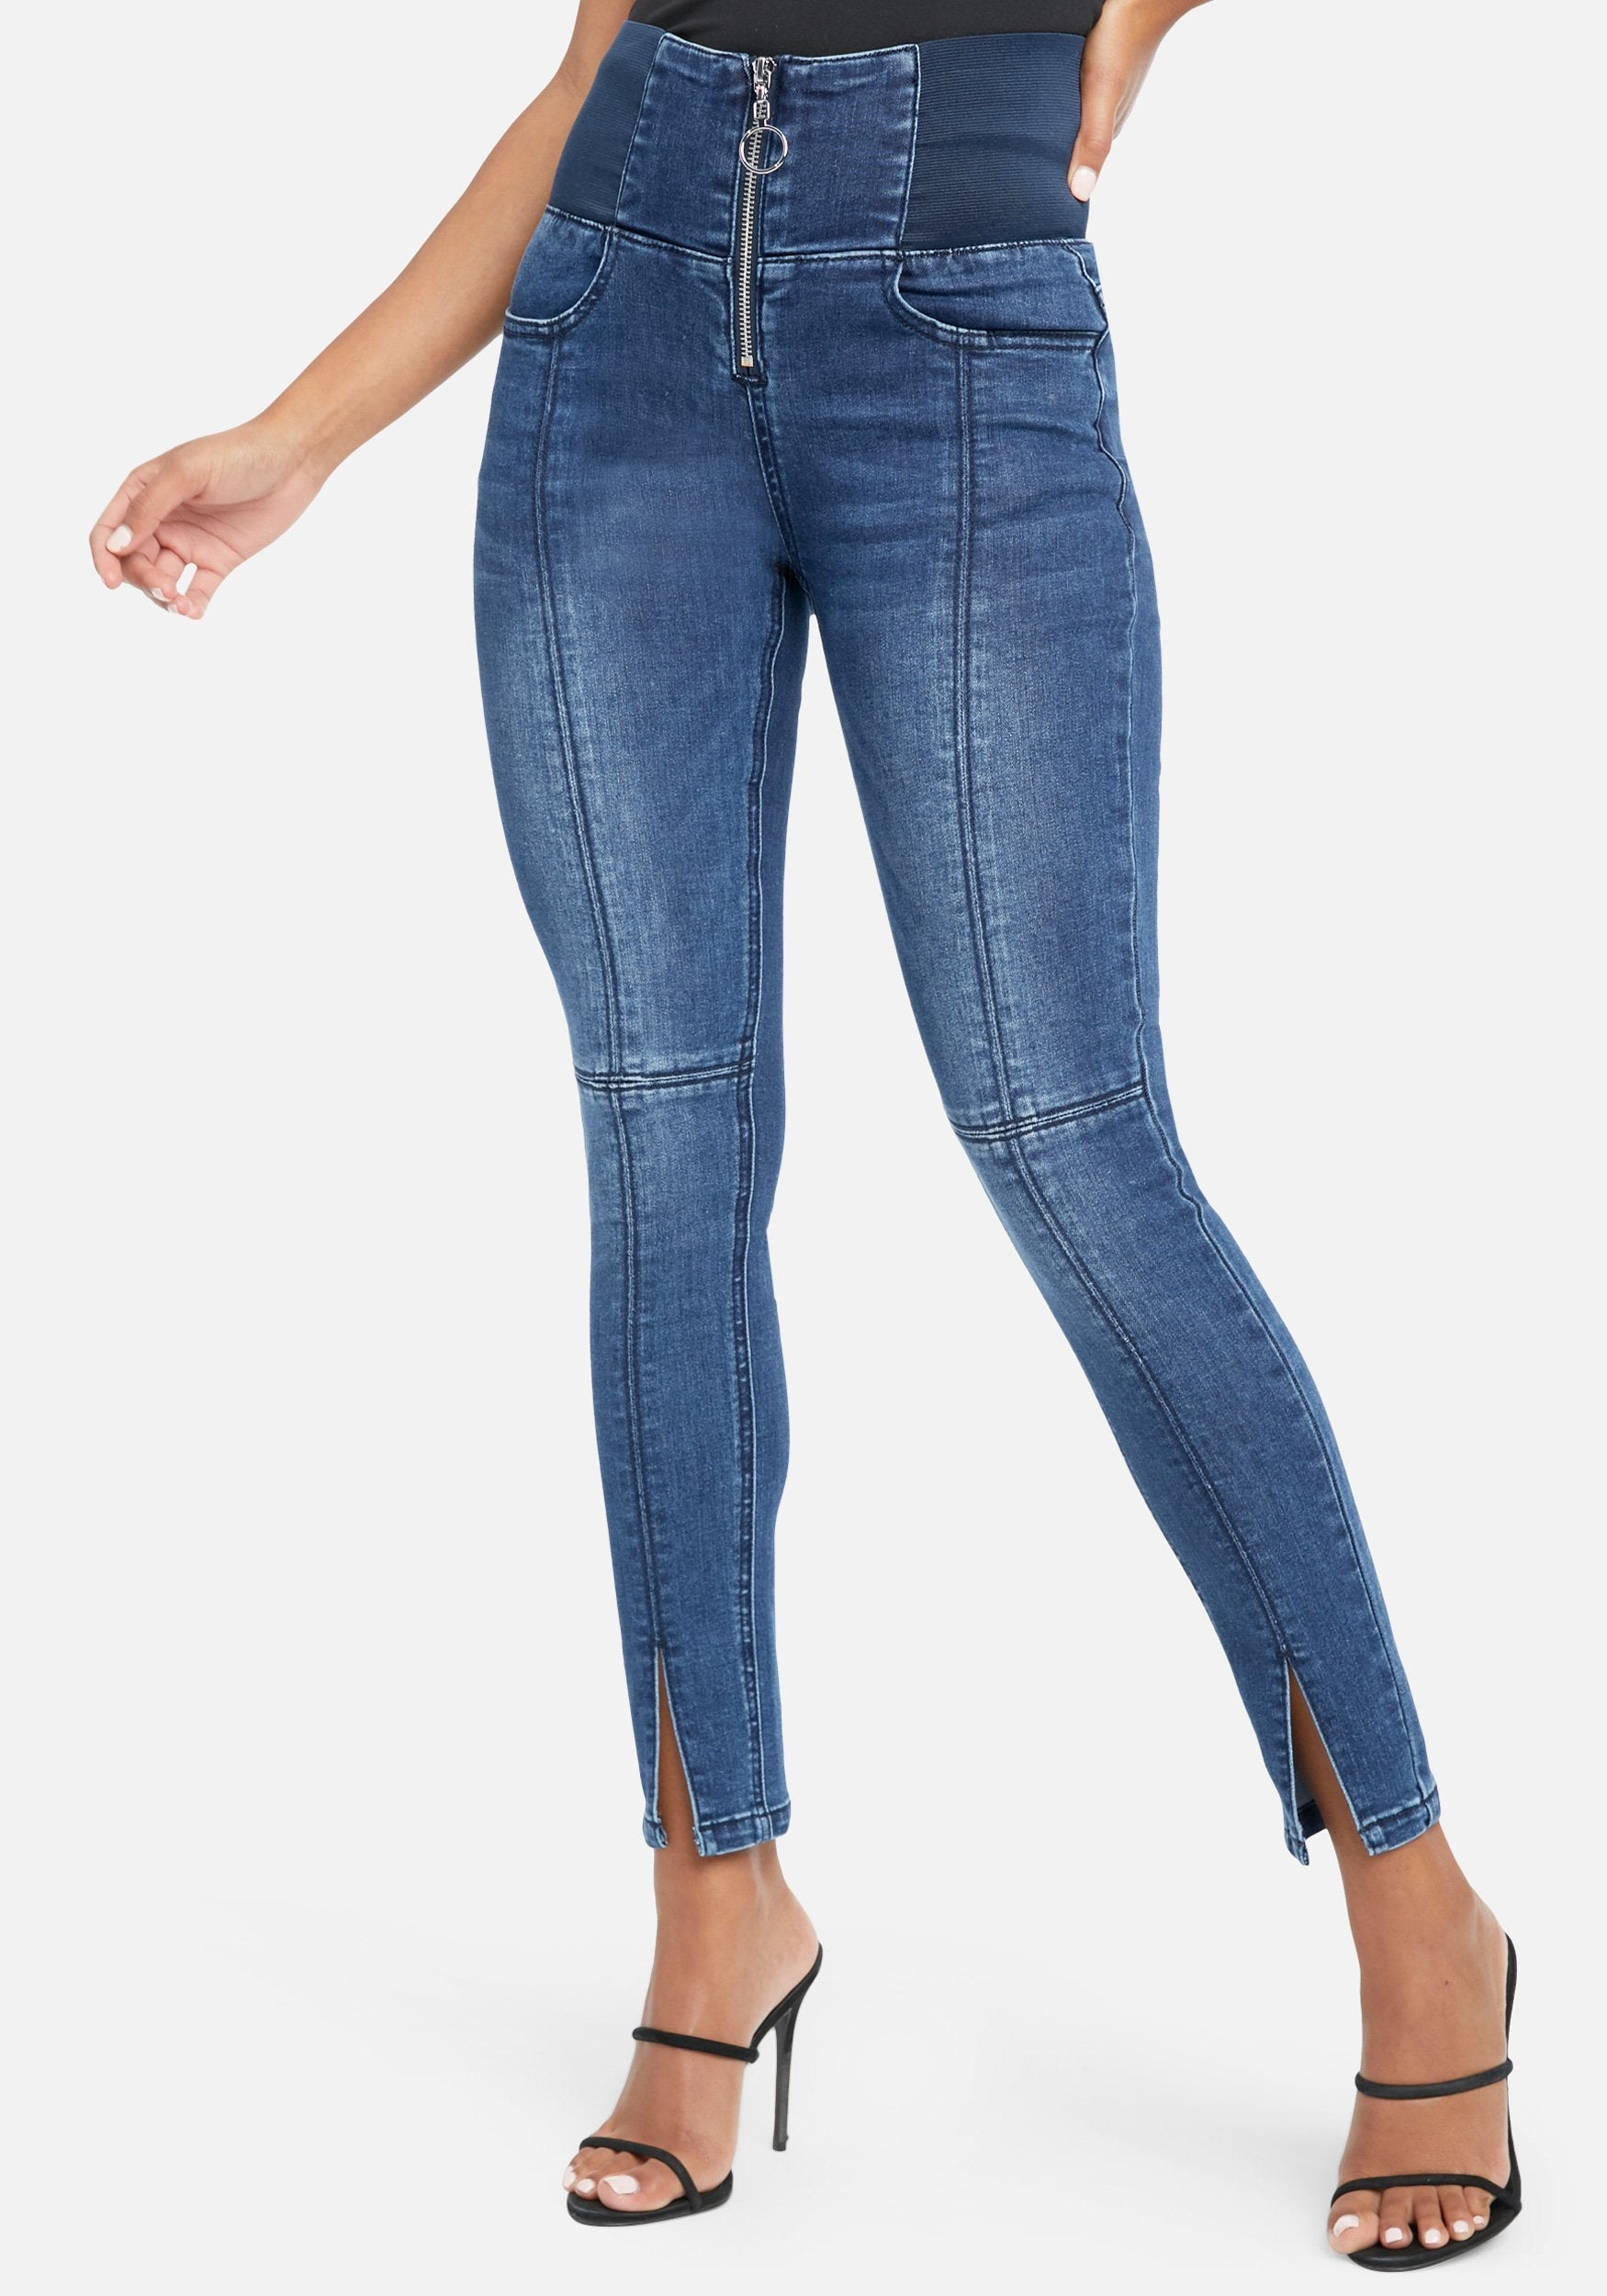 Bebe Women's Elastic Waist Band Skinny Jeans, Size 25 in Med Indigo Wash Cotton/Spandex/Viscose